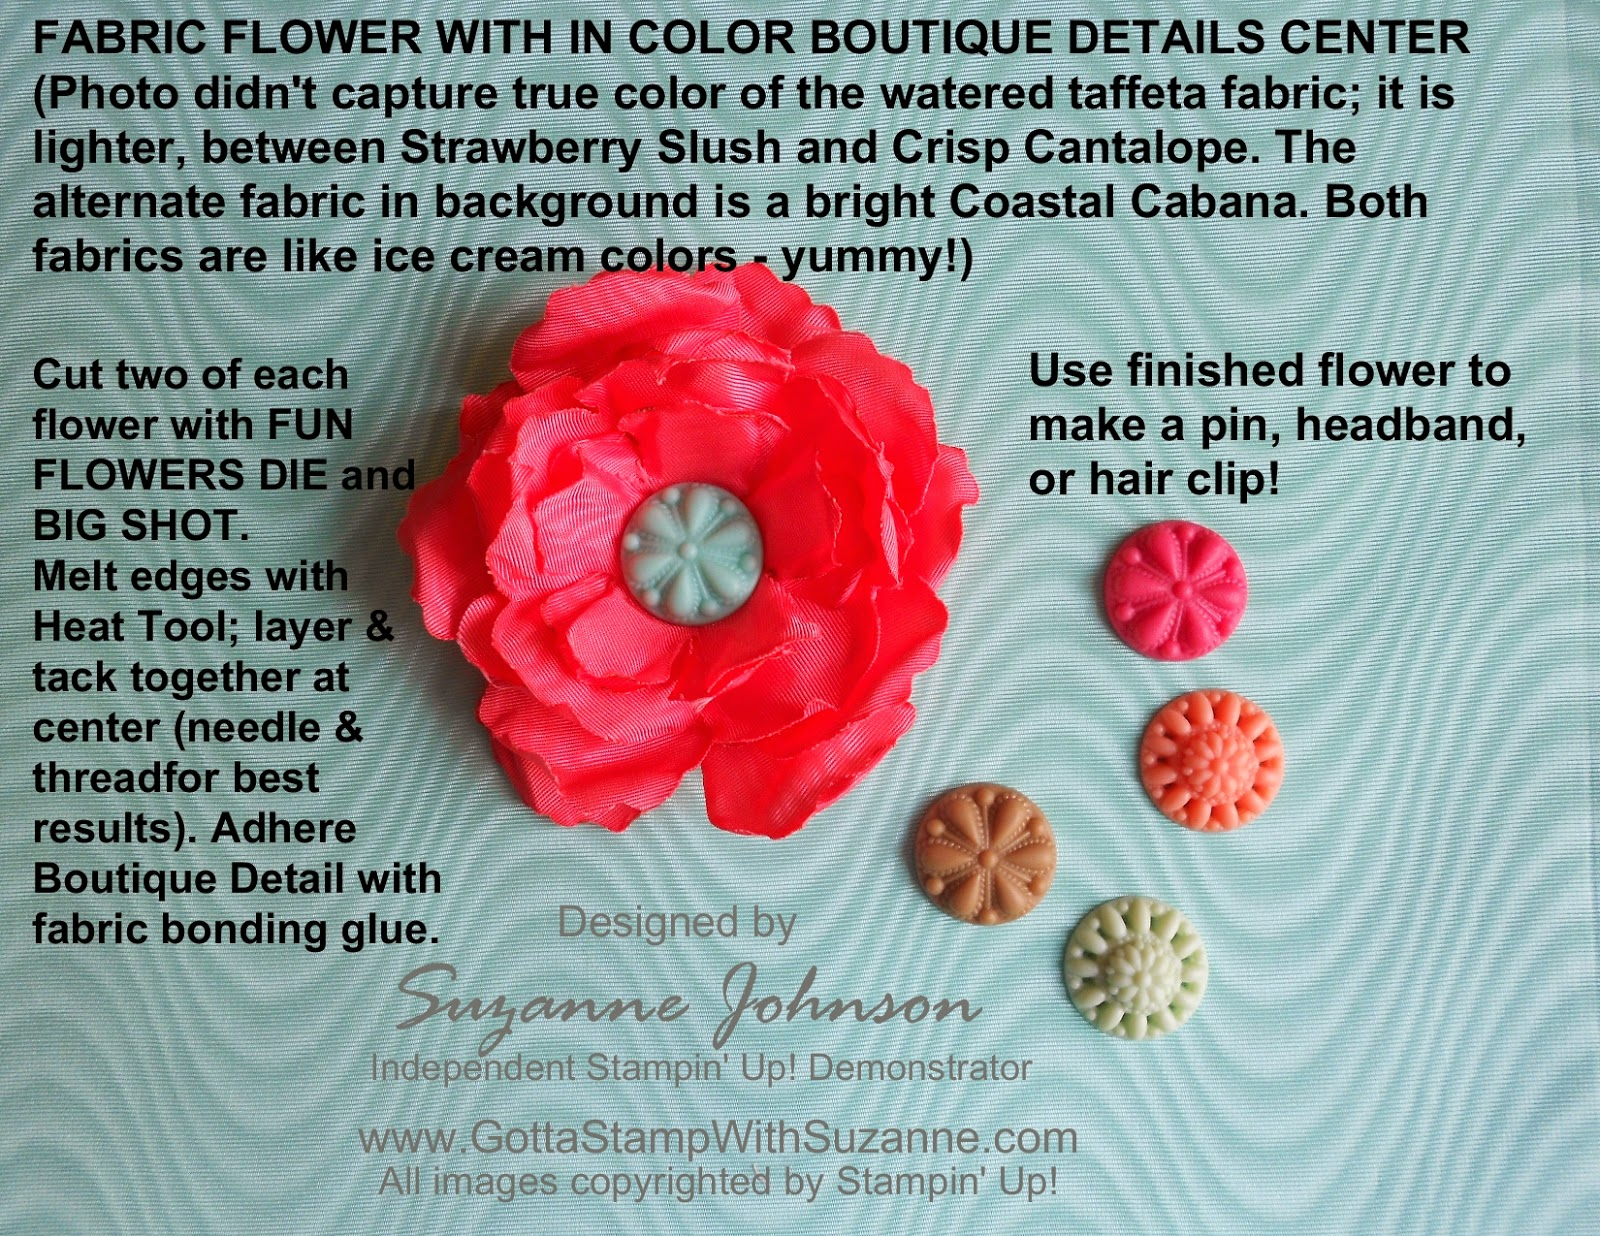 GOTTA STAMP WITH SUZANNE JOHNSON: FABRIC FLOWER WITH IN COLOR ...